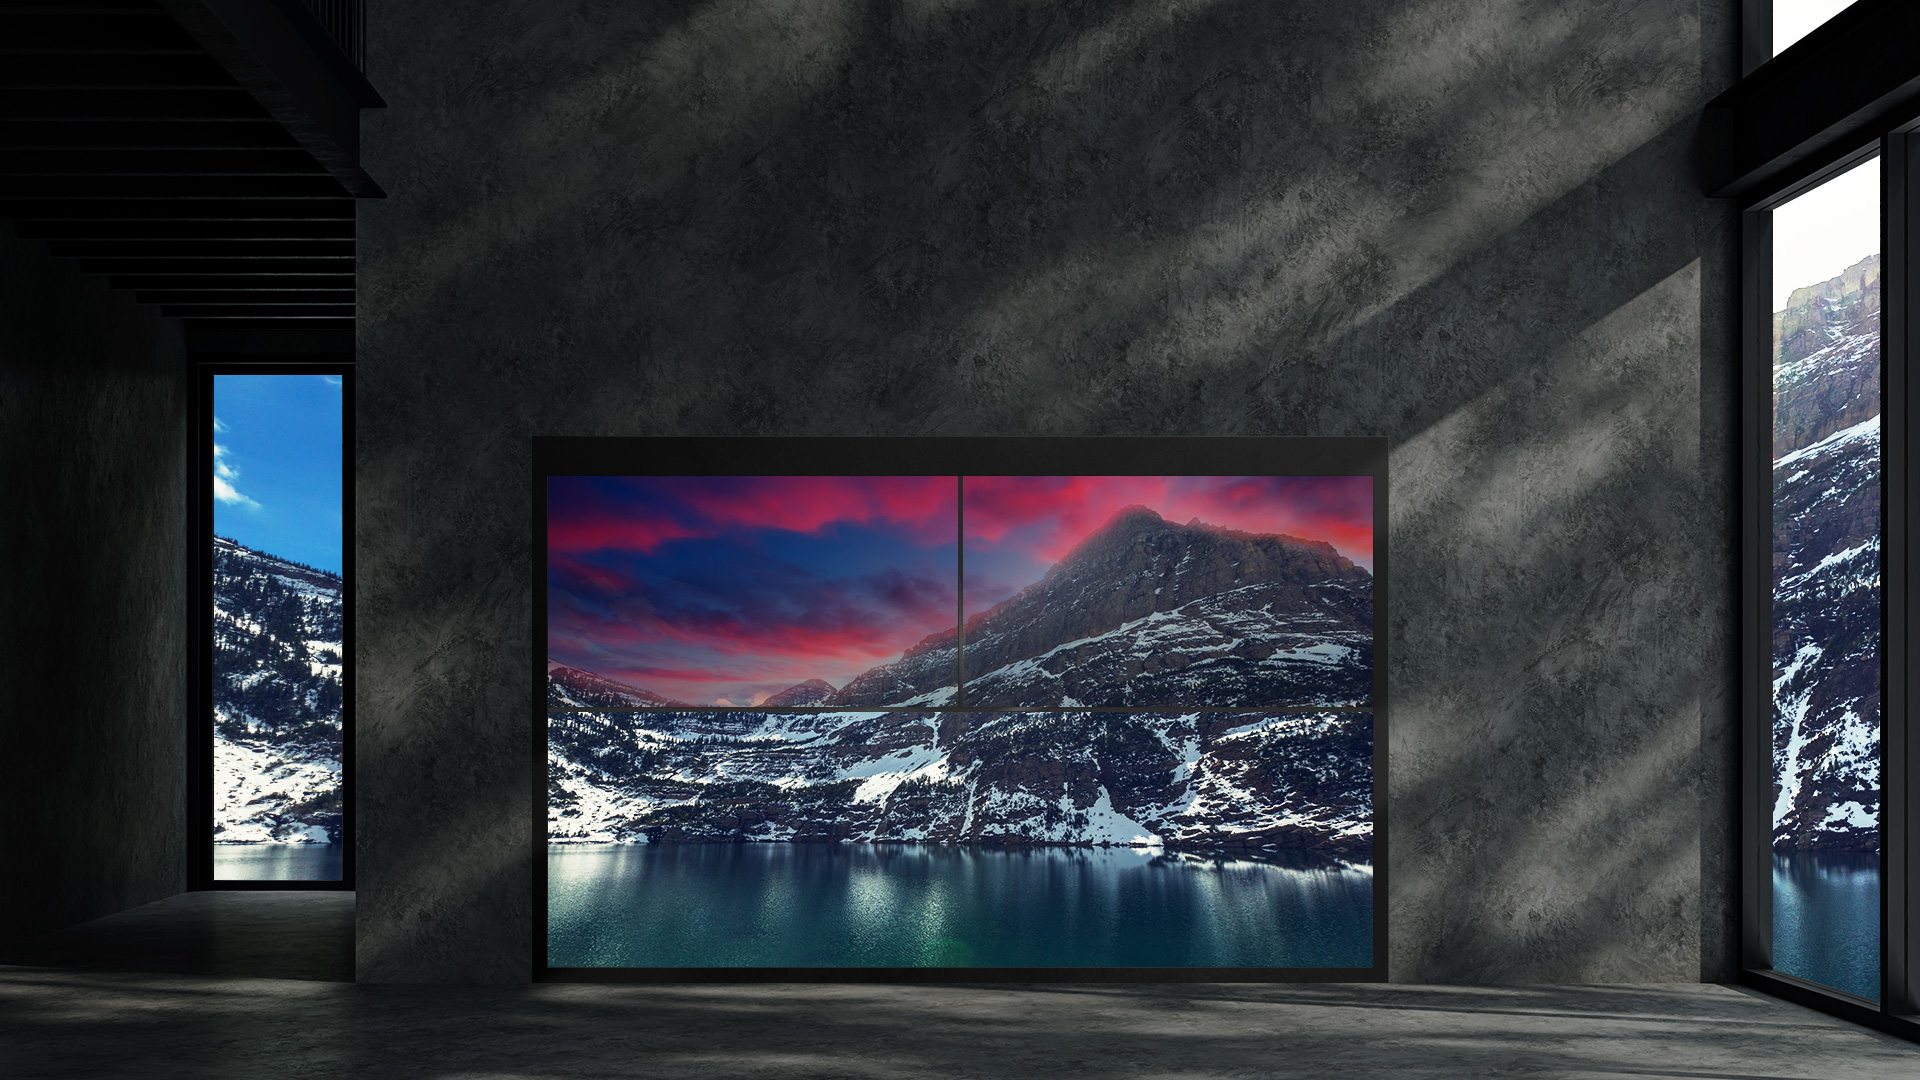 A sunset imagery displayed on a single Transparent OLED signage overlaid with the snowy mountain image in the background.